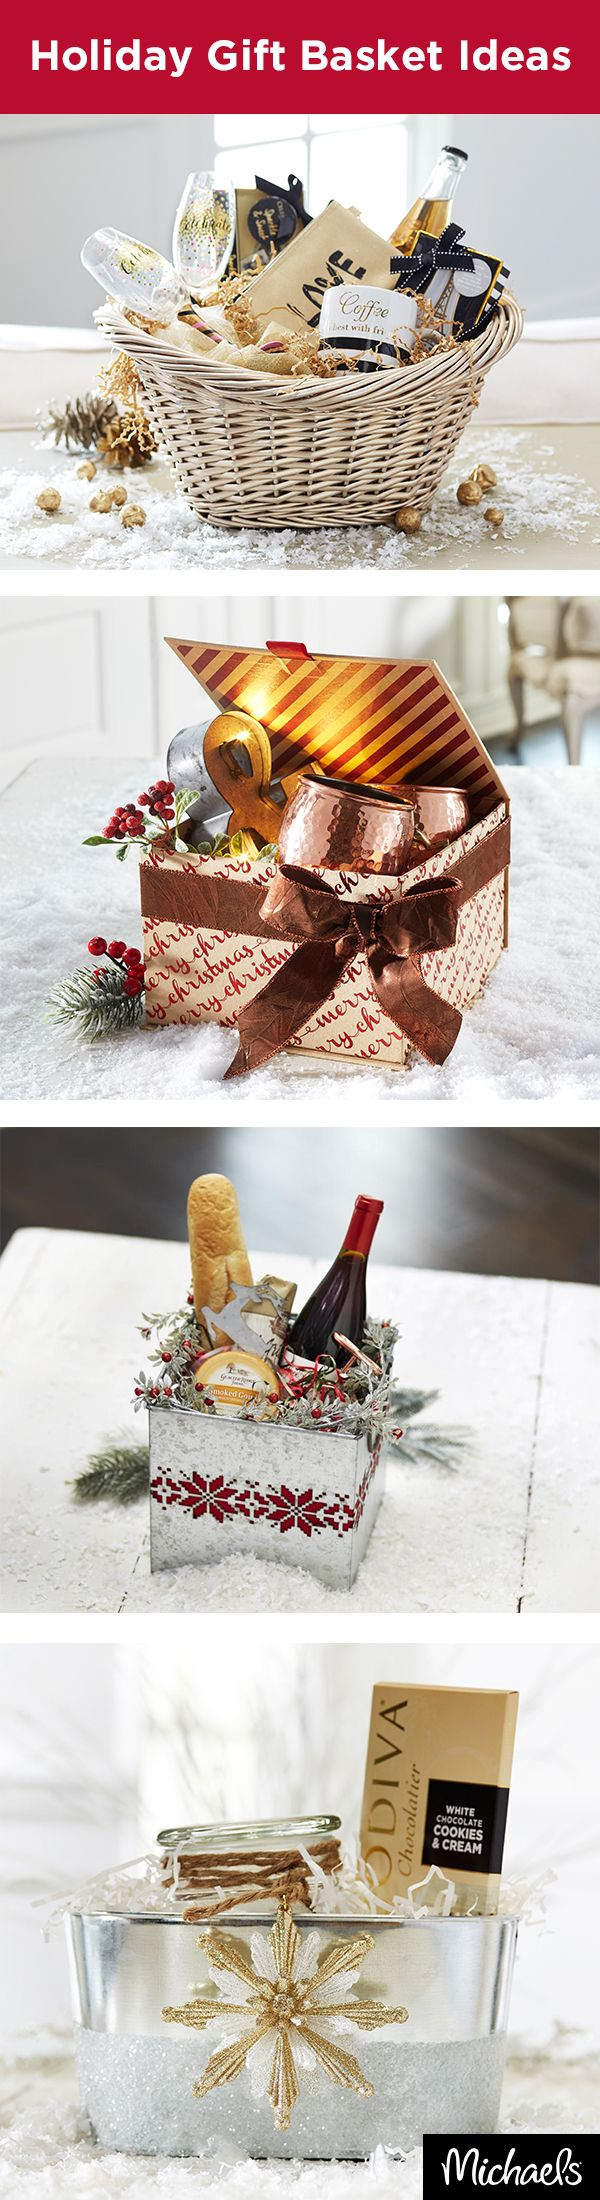 Make gift giving personal with these fun gift baskets. Fill them to ...